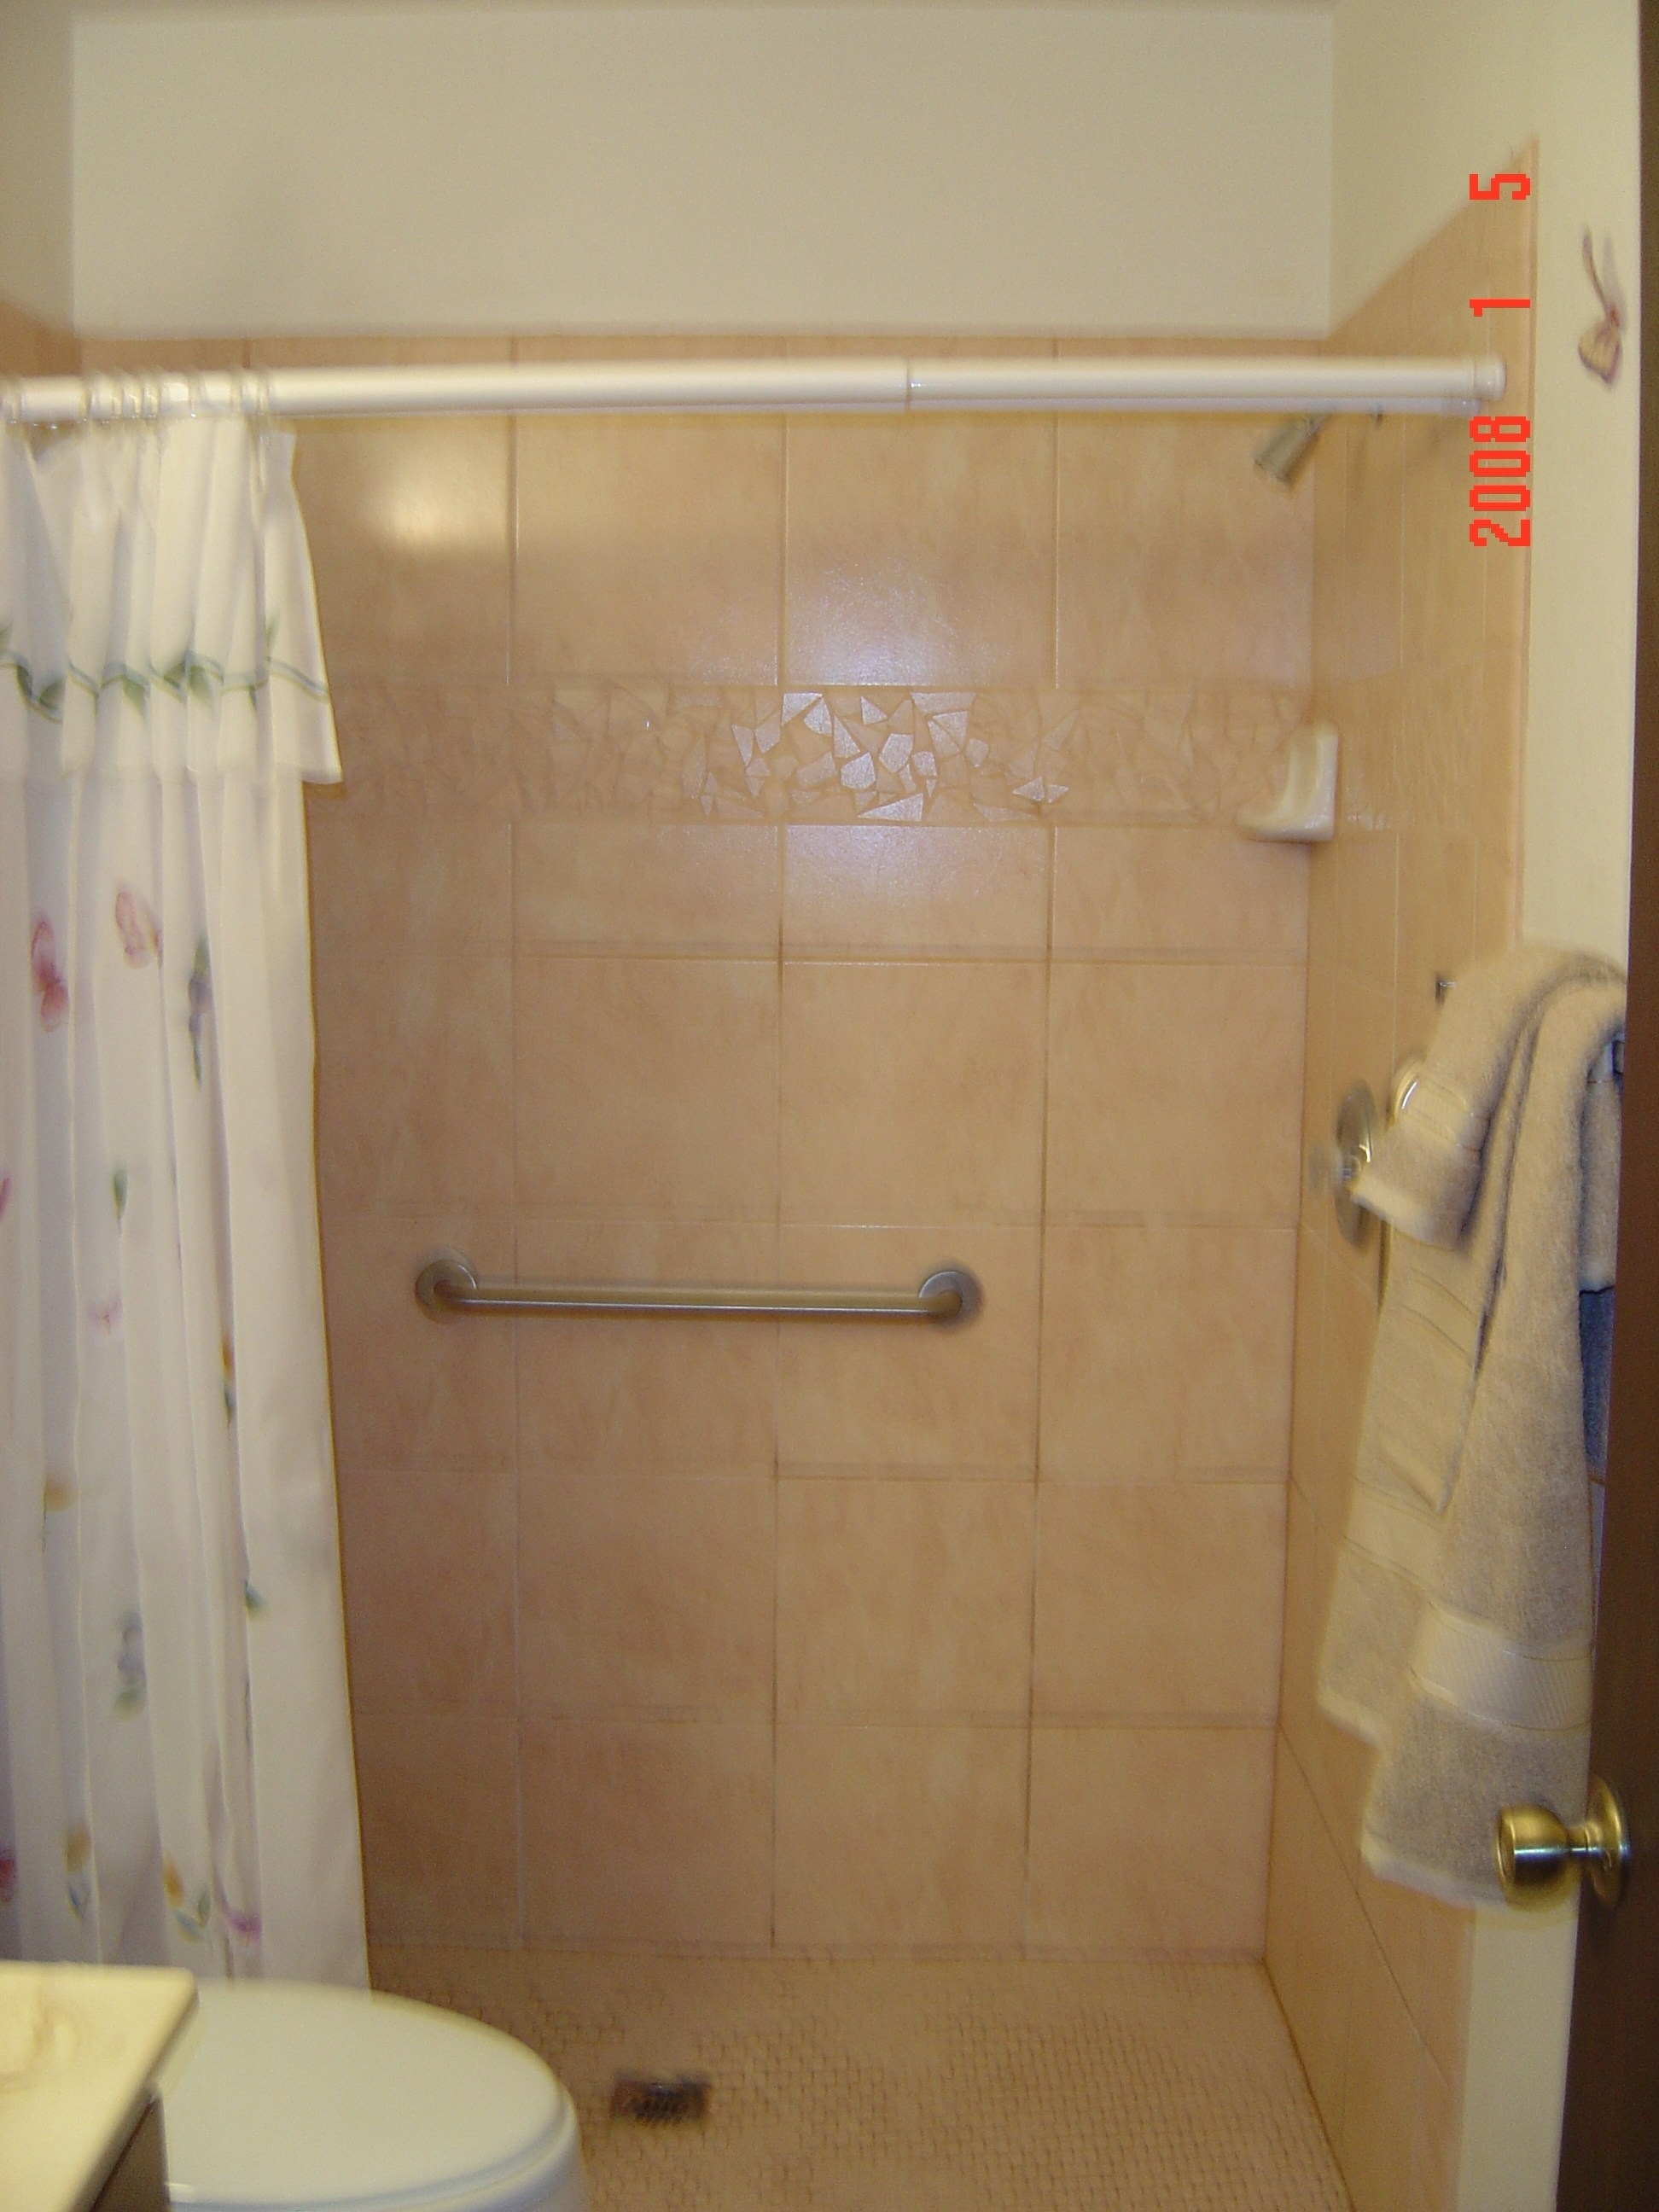 Shower Curtains For Stand Up Shower Stalls • Shower Curtains Ideas